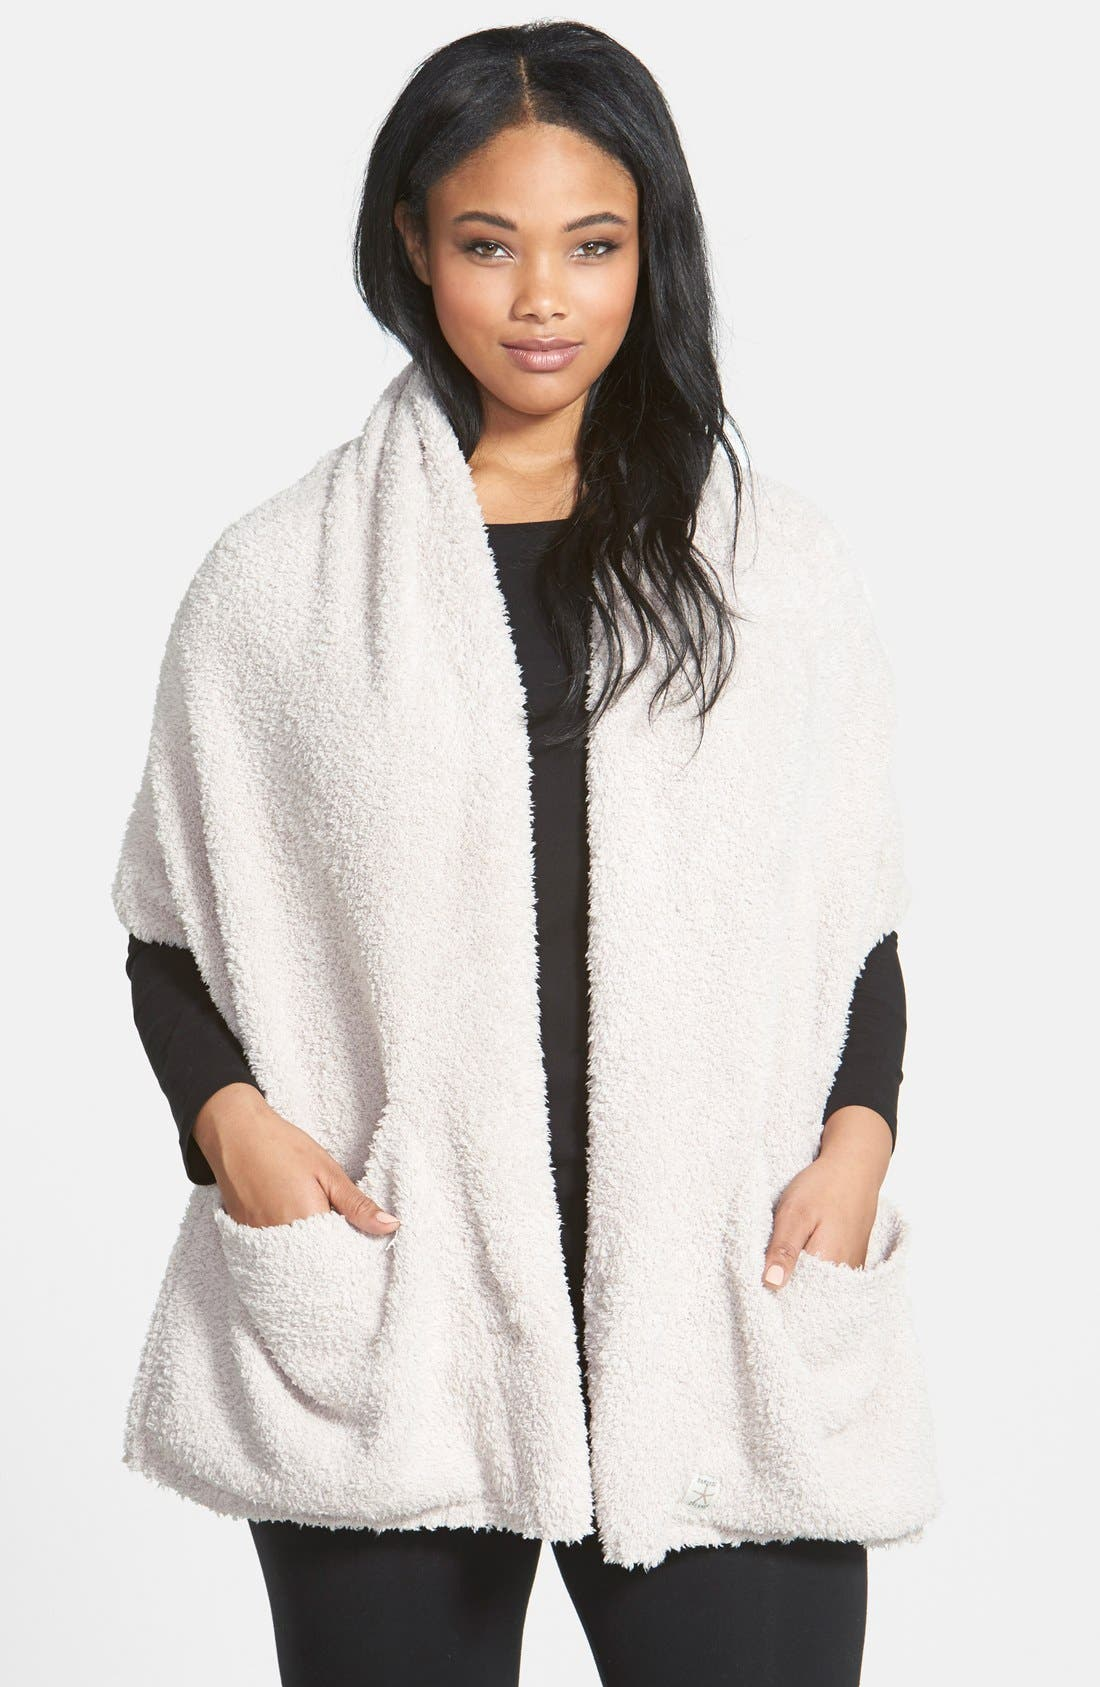 Barefoot Dreams Cozychic Travel Shawl, Size One Size - Beige (Online Only)